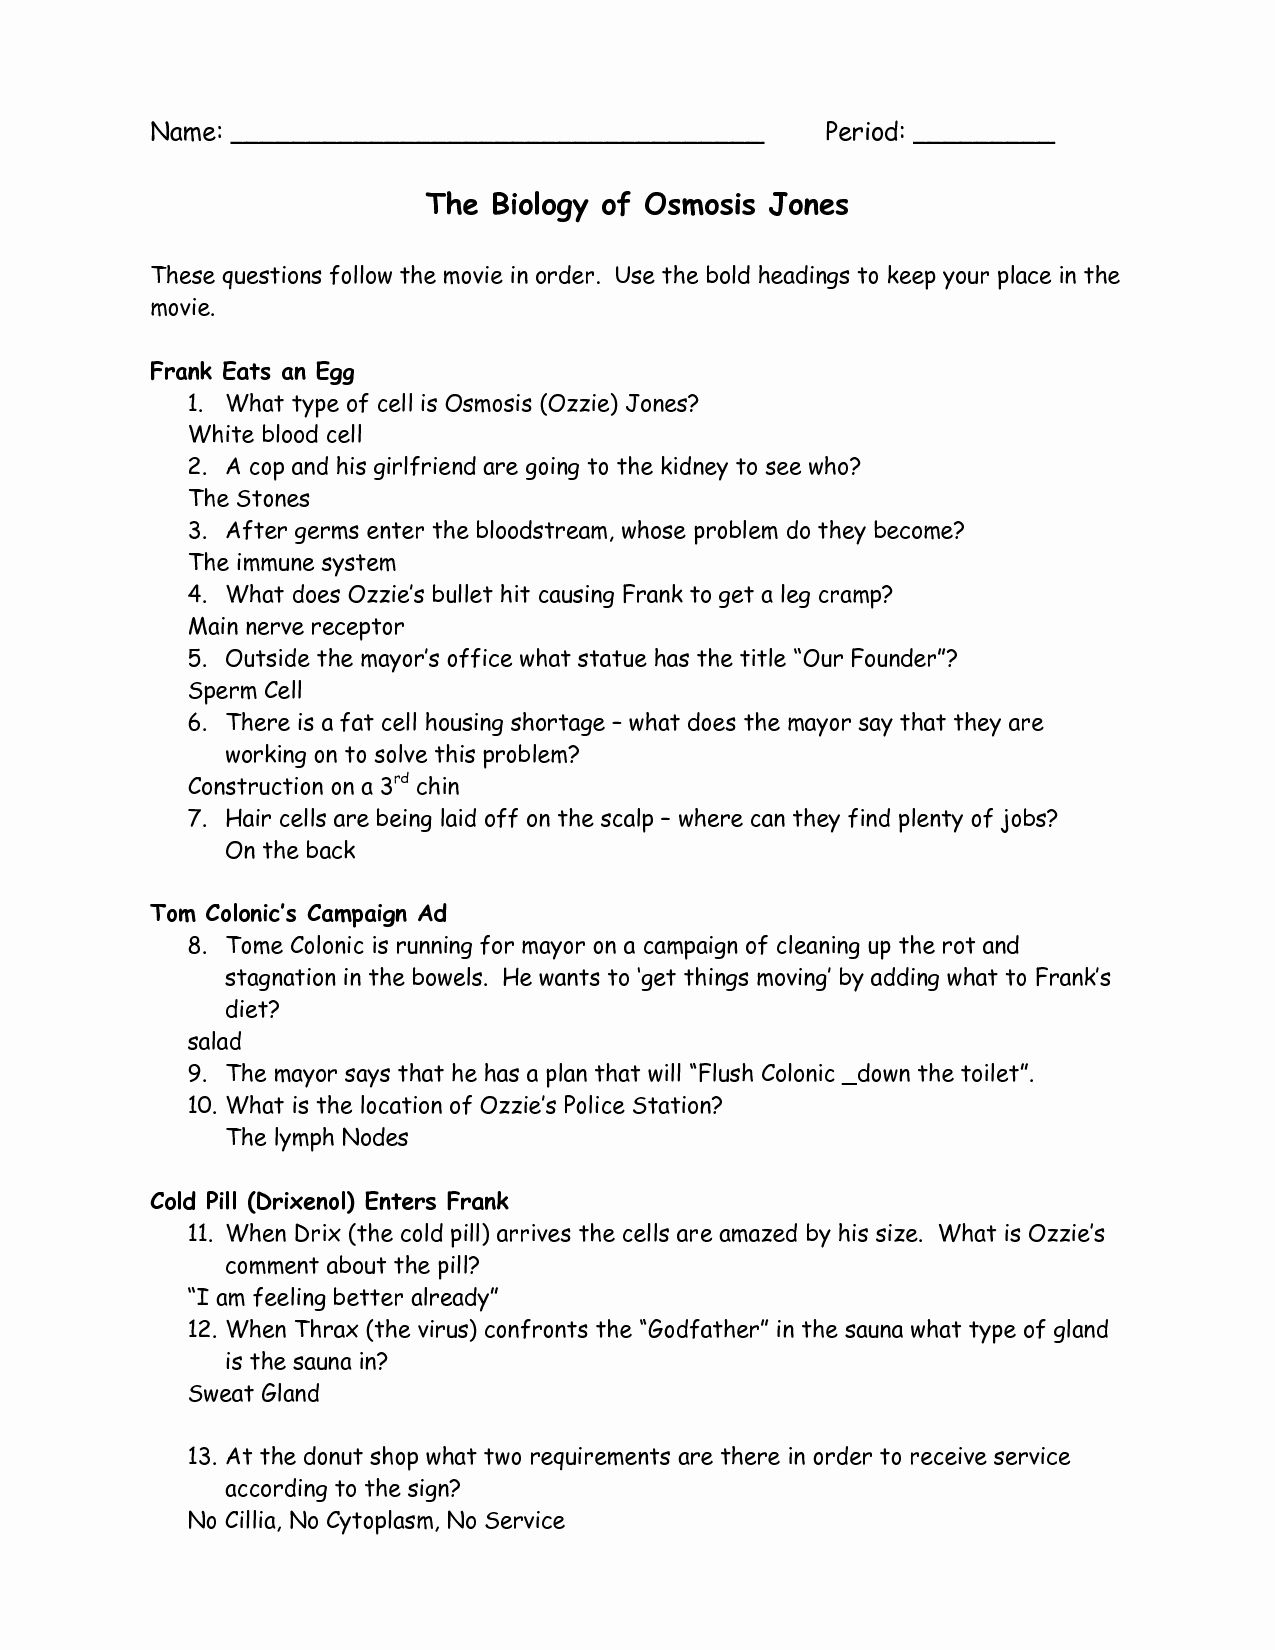 50 Osmosis Jones Video Worksheet Answers In